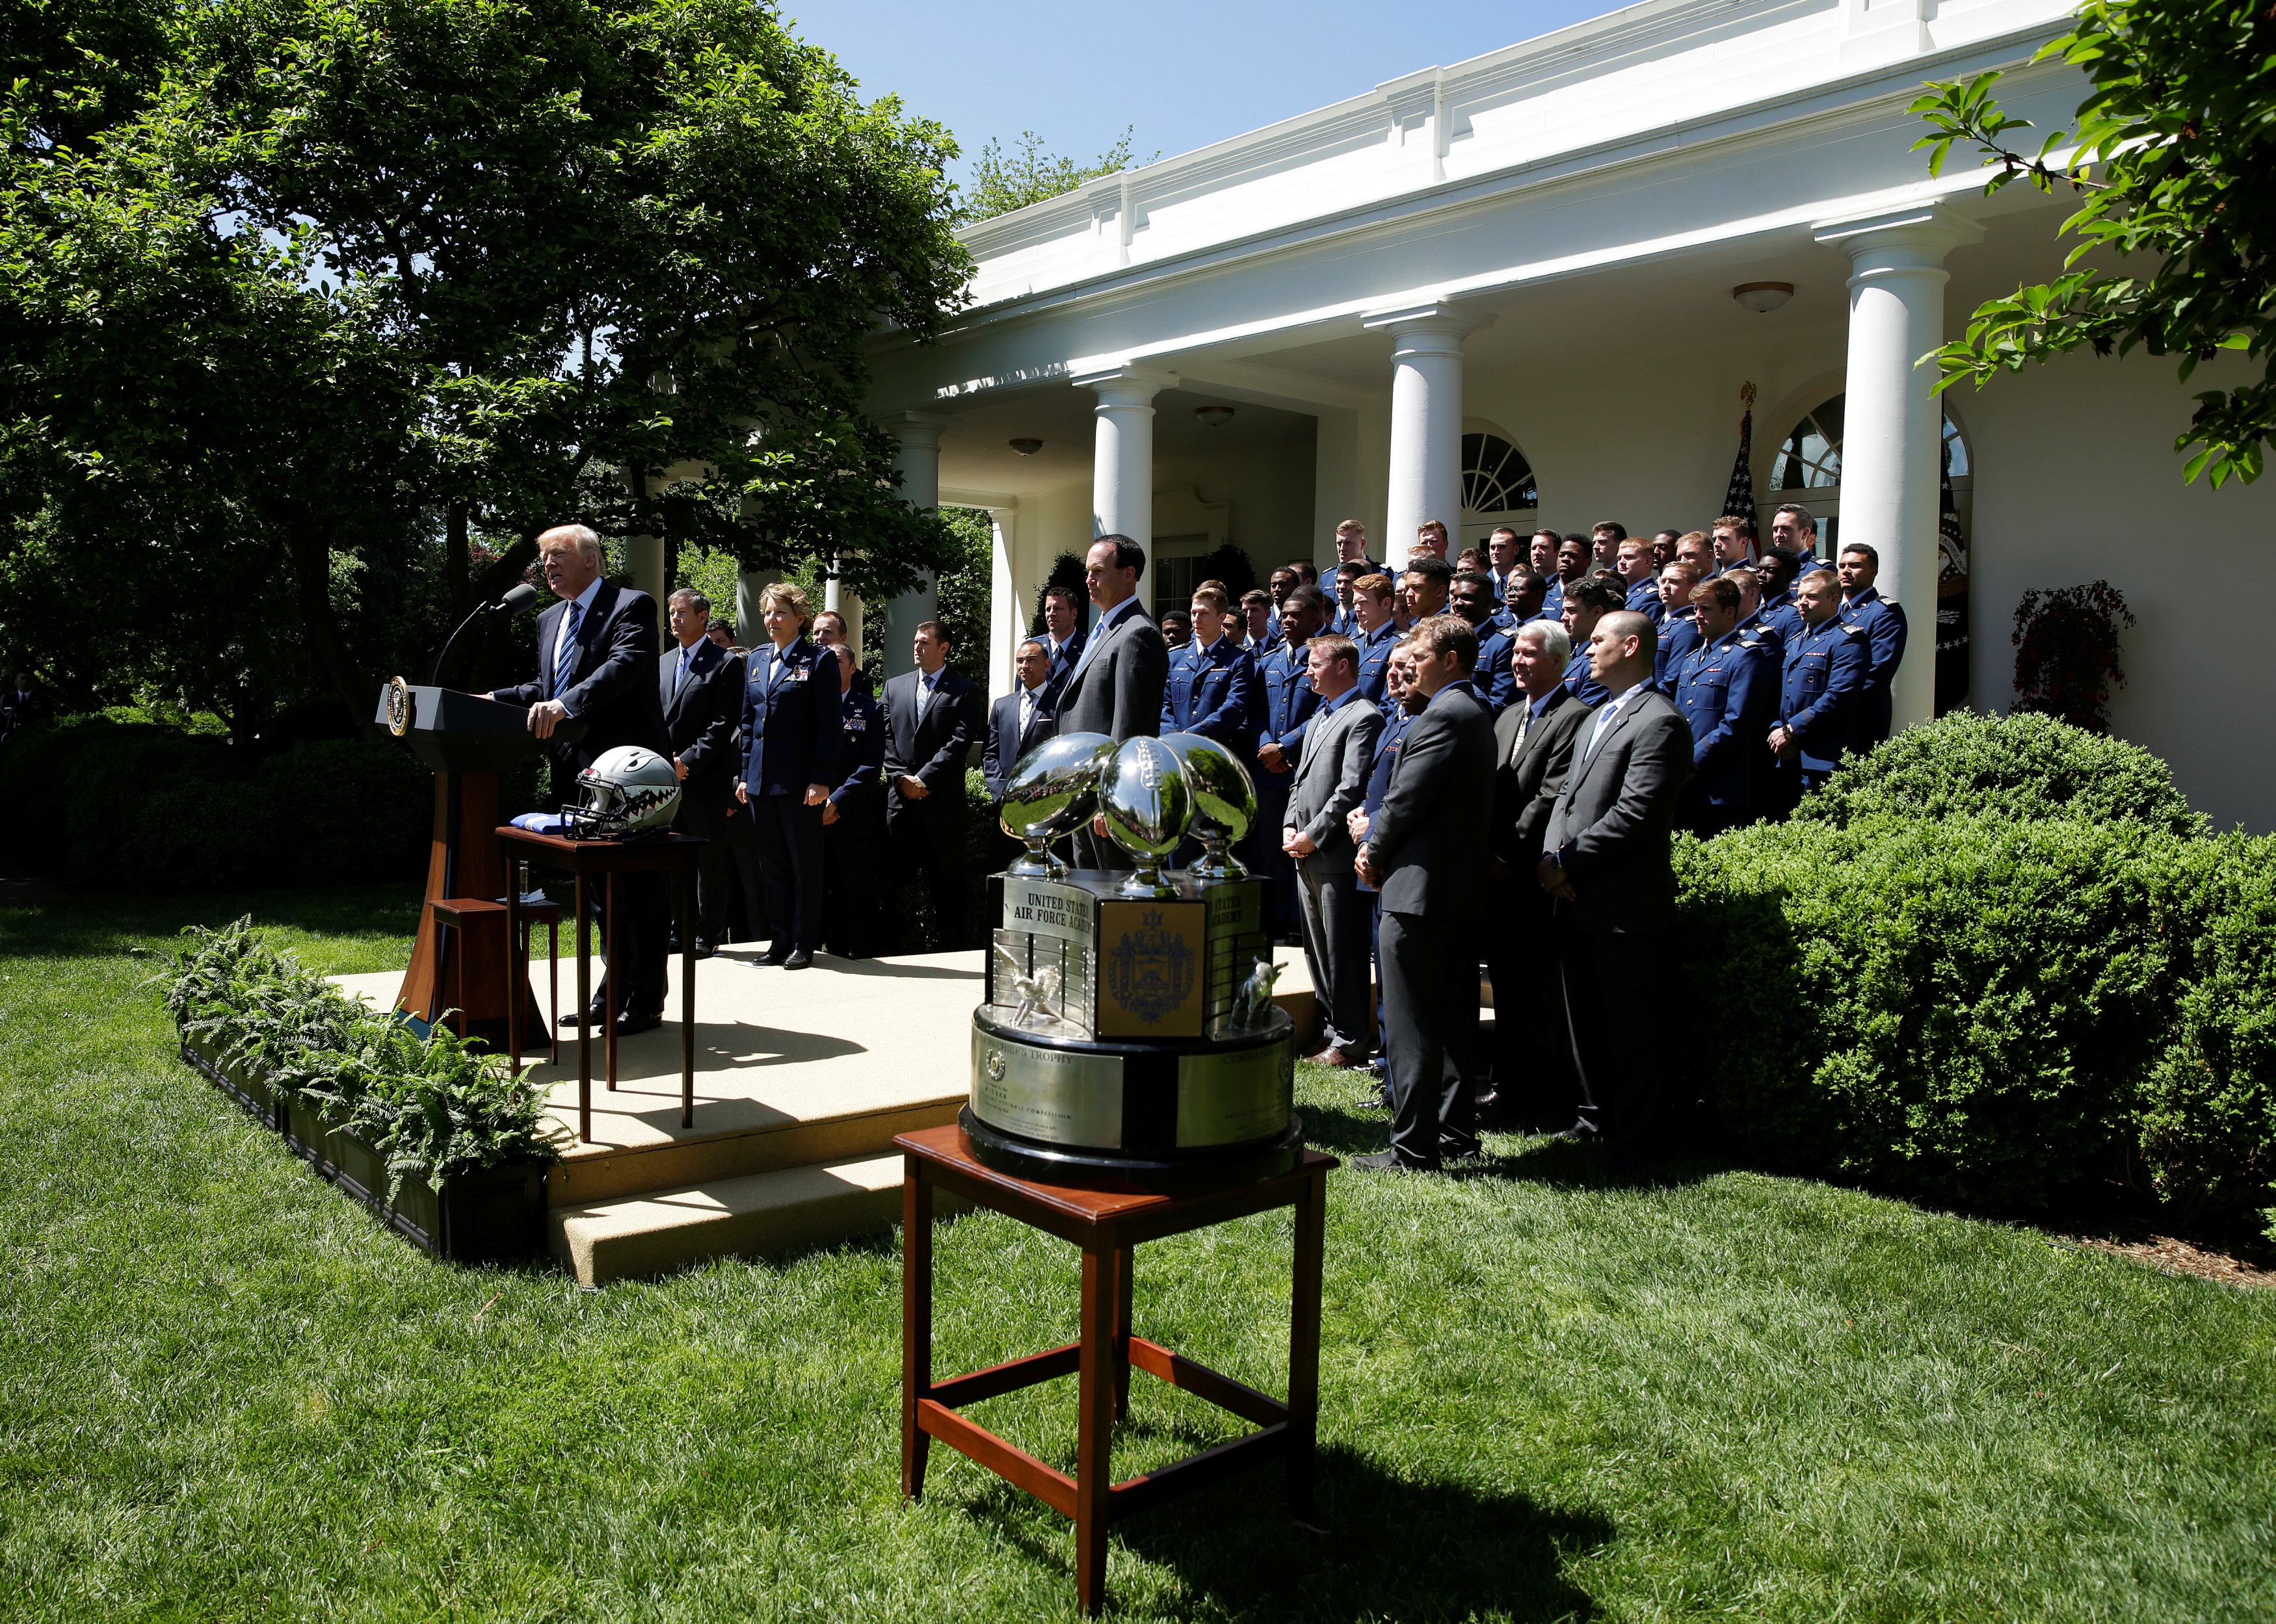 President Donald Trump presents the U.S. Air Force Academy football team with the Commander-in-Chief trophy in the Rose Garden of the White House in Washington on May 2, 2017. (REUTERS/Joshua Roberts)